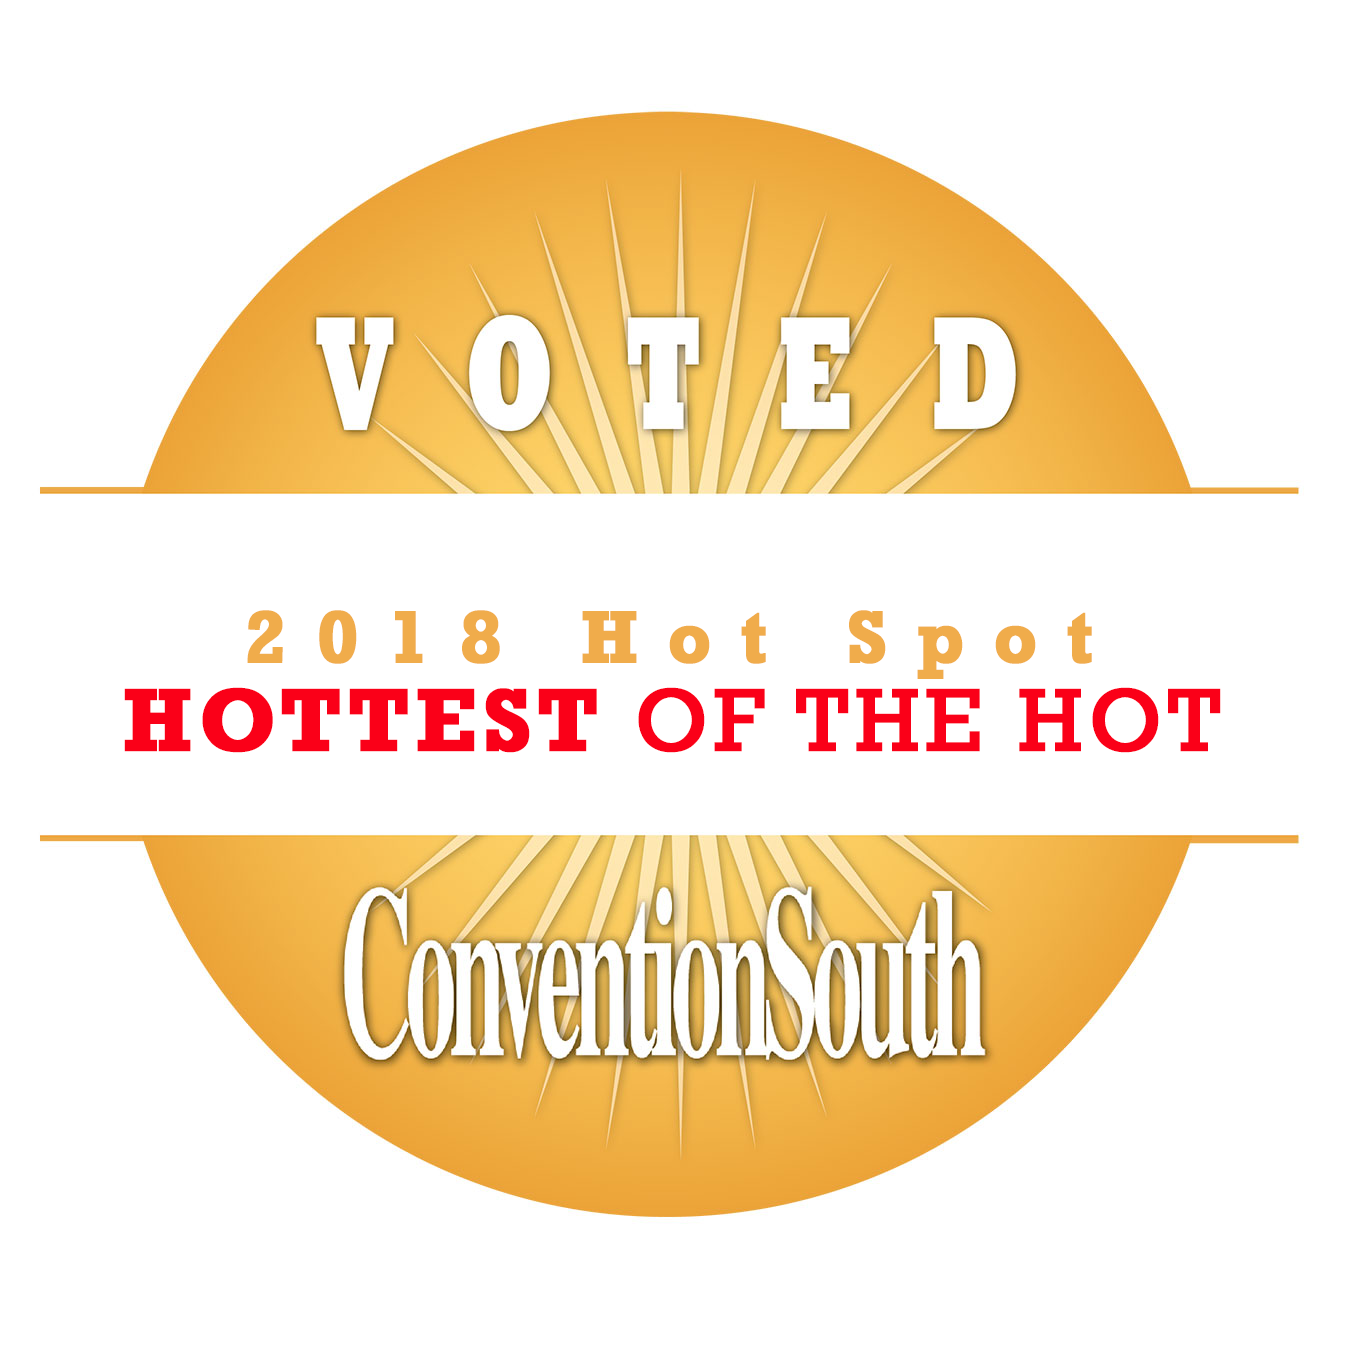 2018 Hot Spot Convention South Award